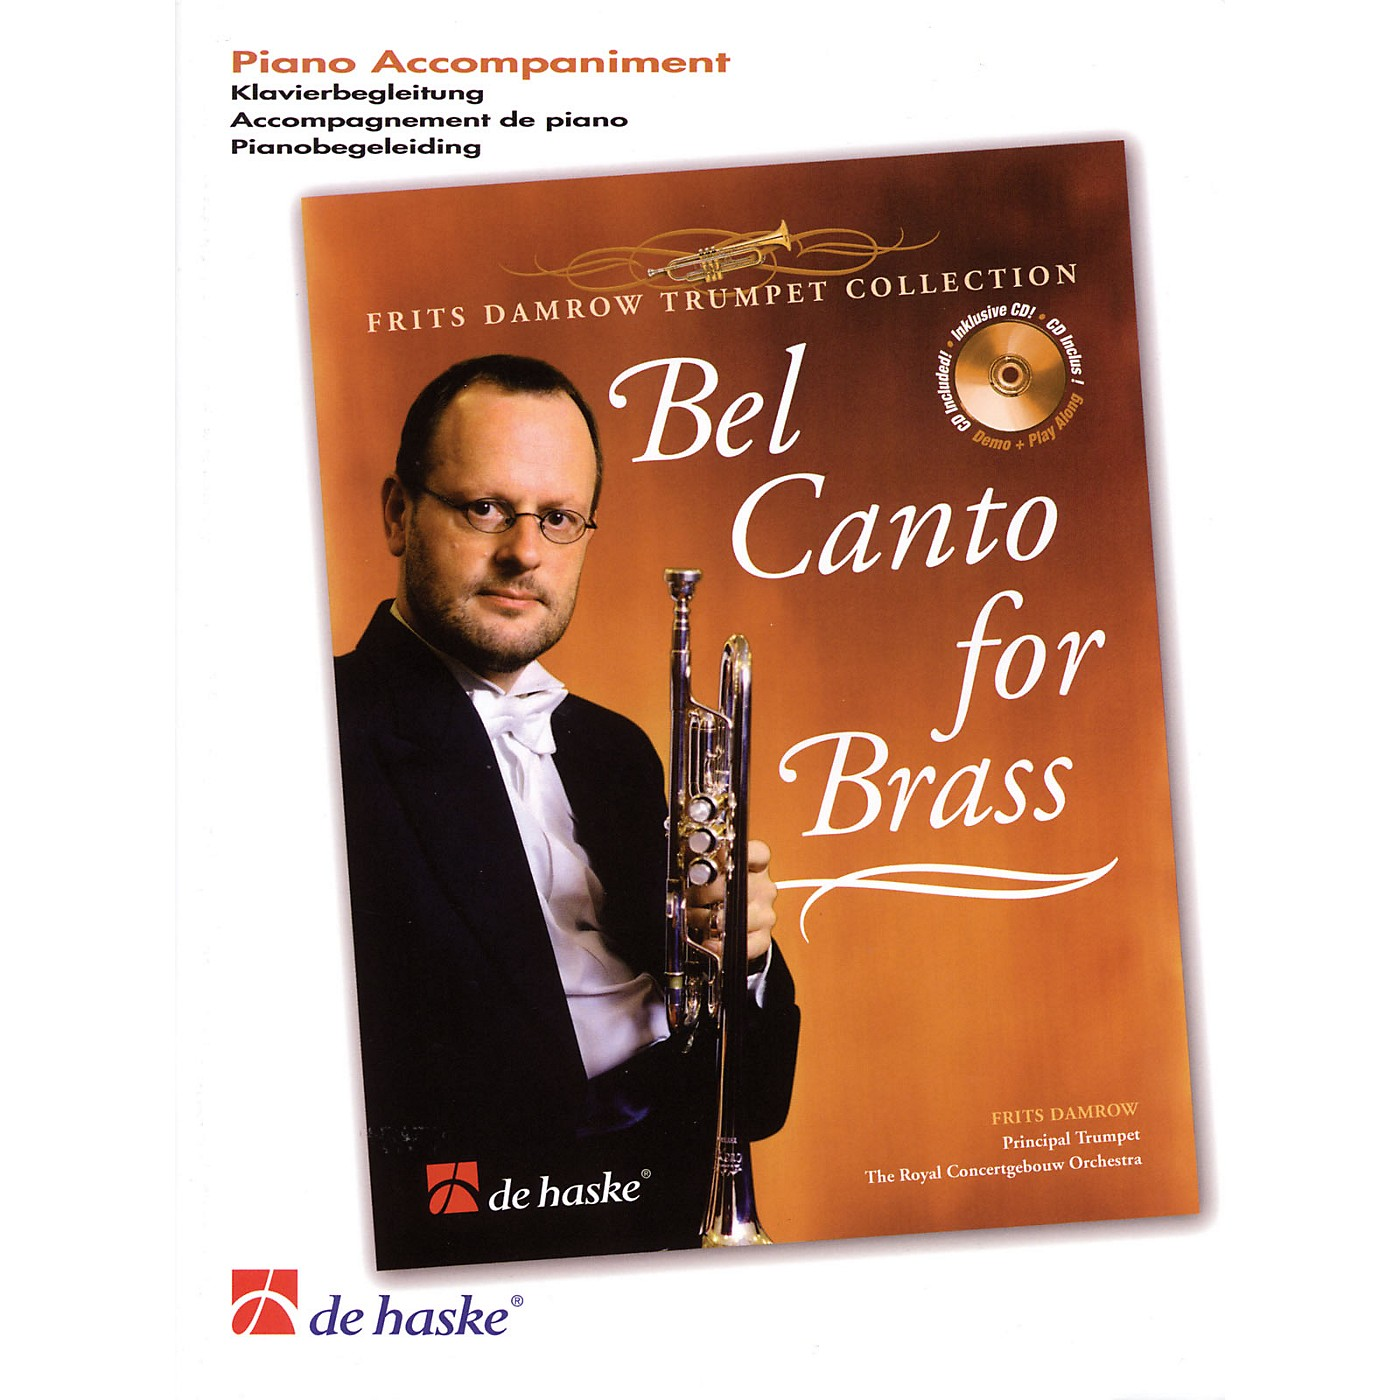 De Haske Music Bel Canto for Brass (Frits Damrow Trumpet Collection) De Haske Play-Along Book Series by Frits Damrow thumbnail